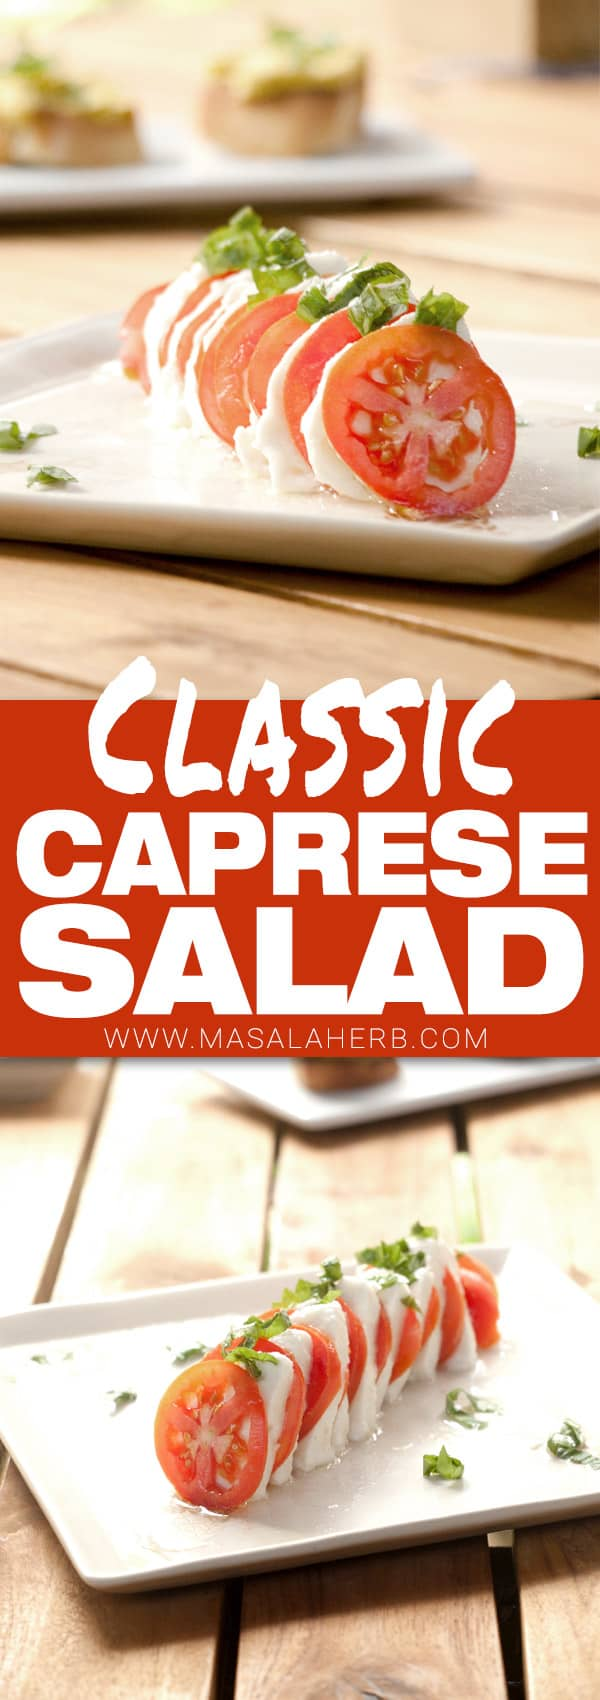 Simple Caprese Salad - Italian Tomato Mozzarella Basil Olive Oil Insalate - How to make Caprese Salad www.MasalaHerb.com #salad #mozzarella #italian #masalaherb